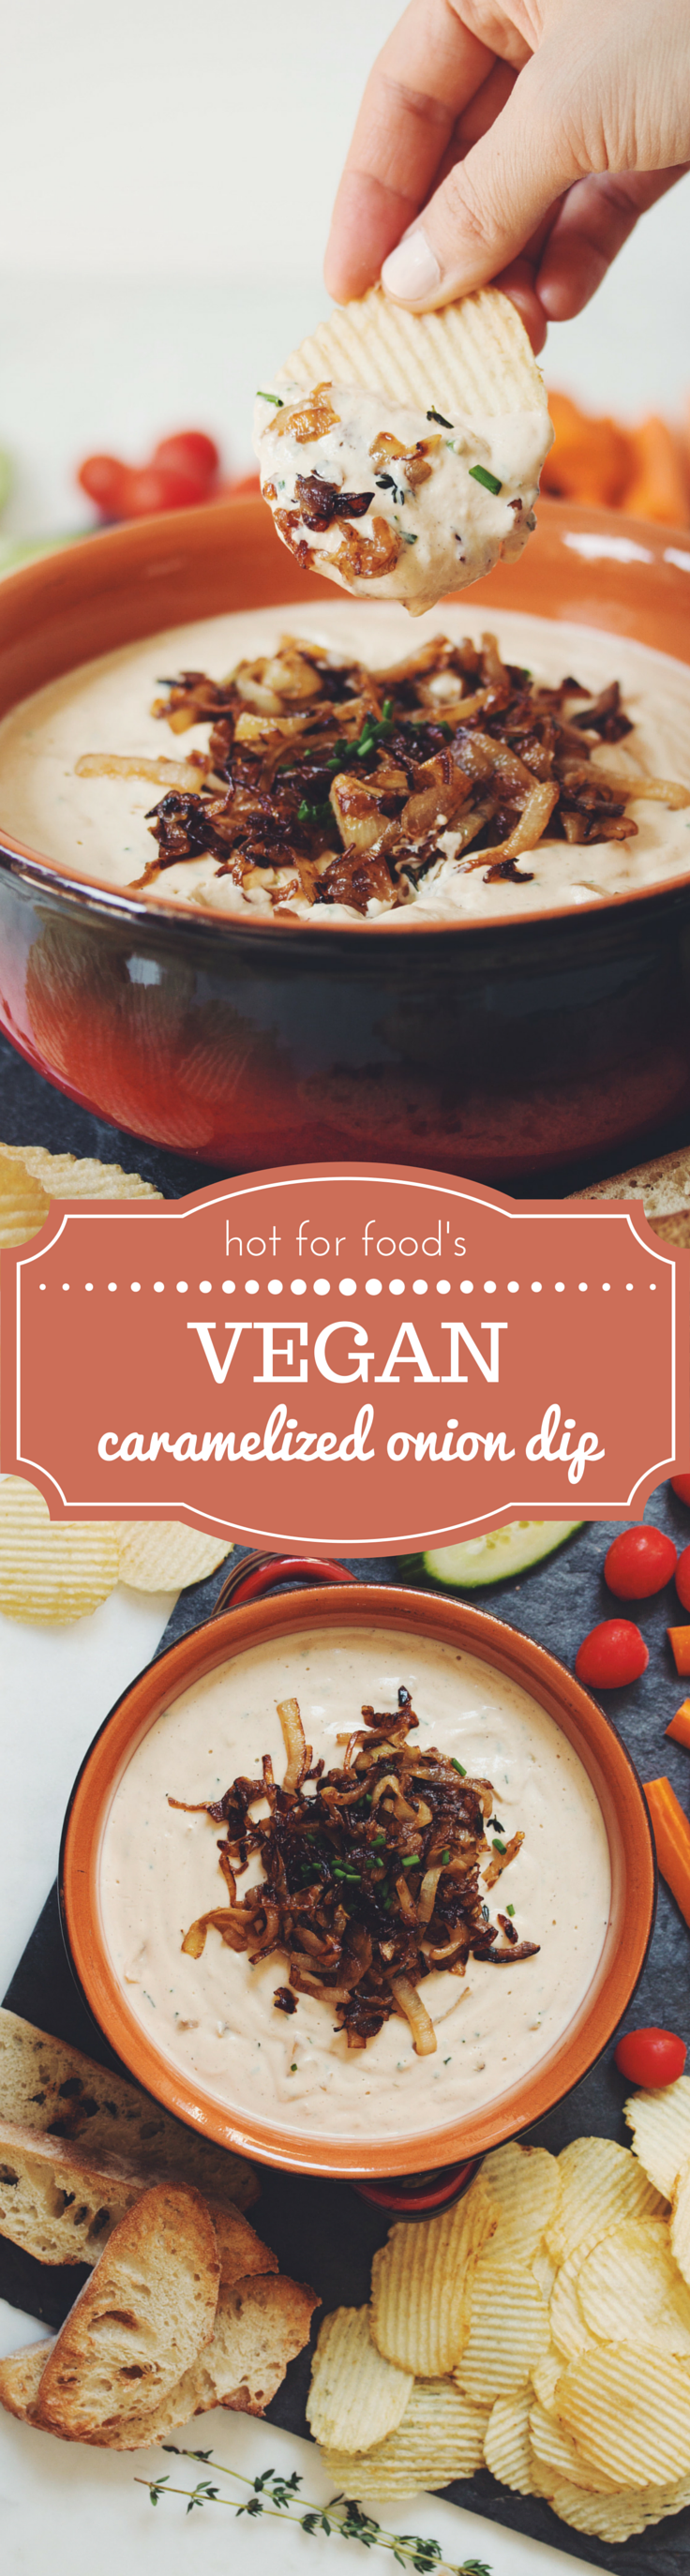 vegan caramelized onion dip | RECIPE on hotforfoodblog.com